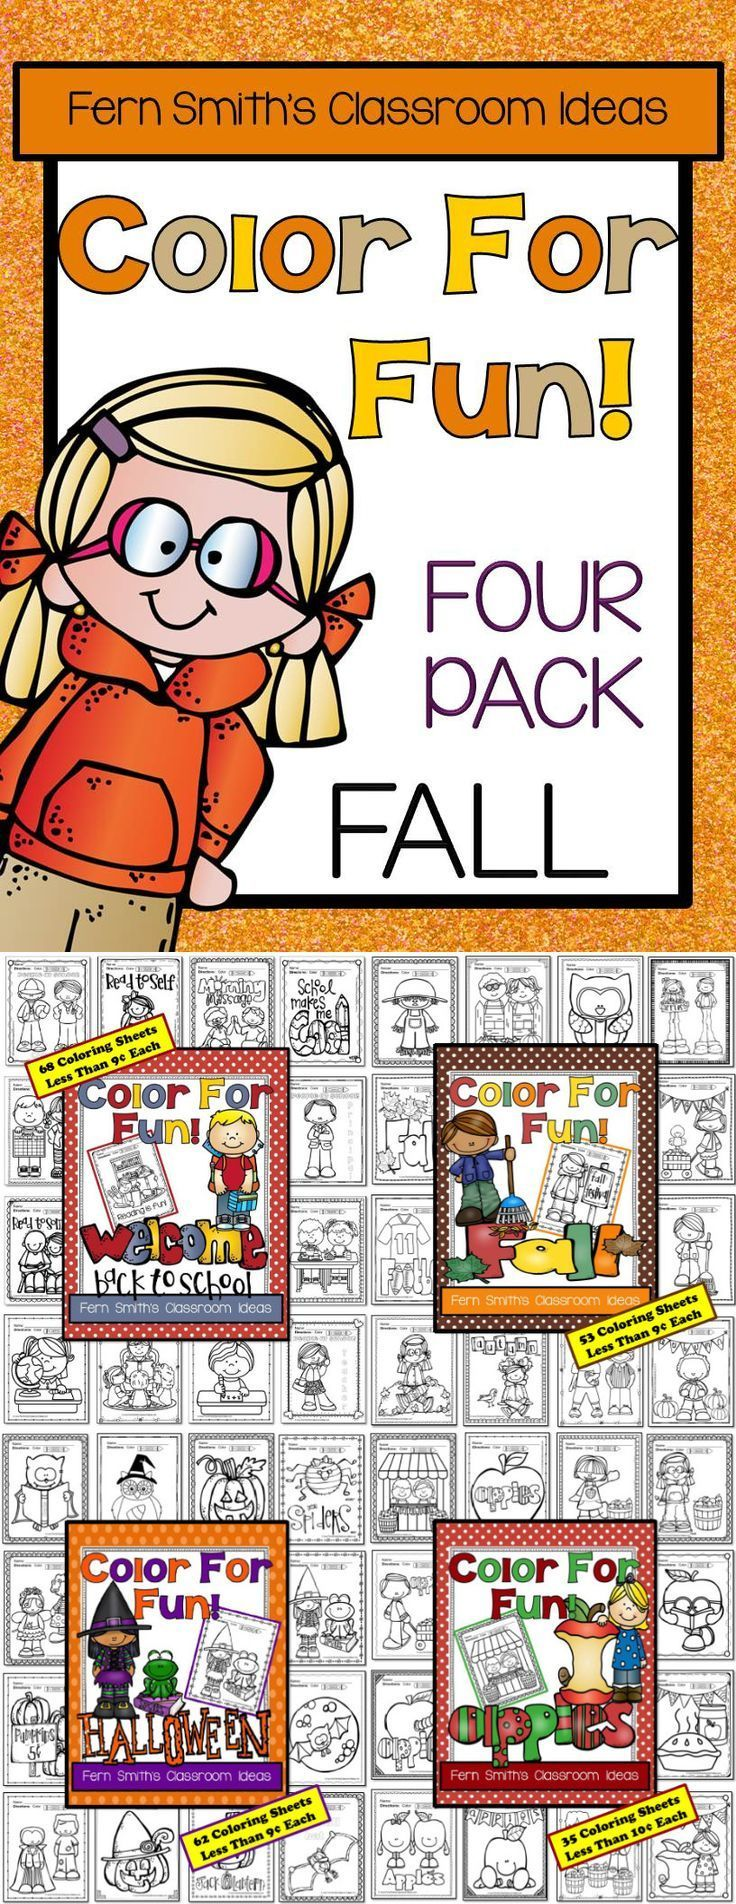 Color For Fun Fall Four Pack of Printable Coloring Pages {220 coloring pages equals less than 9 cents a page.} #FREE Fall Color for Fun Coloring Sheet Printable in the Preview File, download it and try before you buy! #TPT $Paid